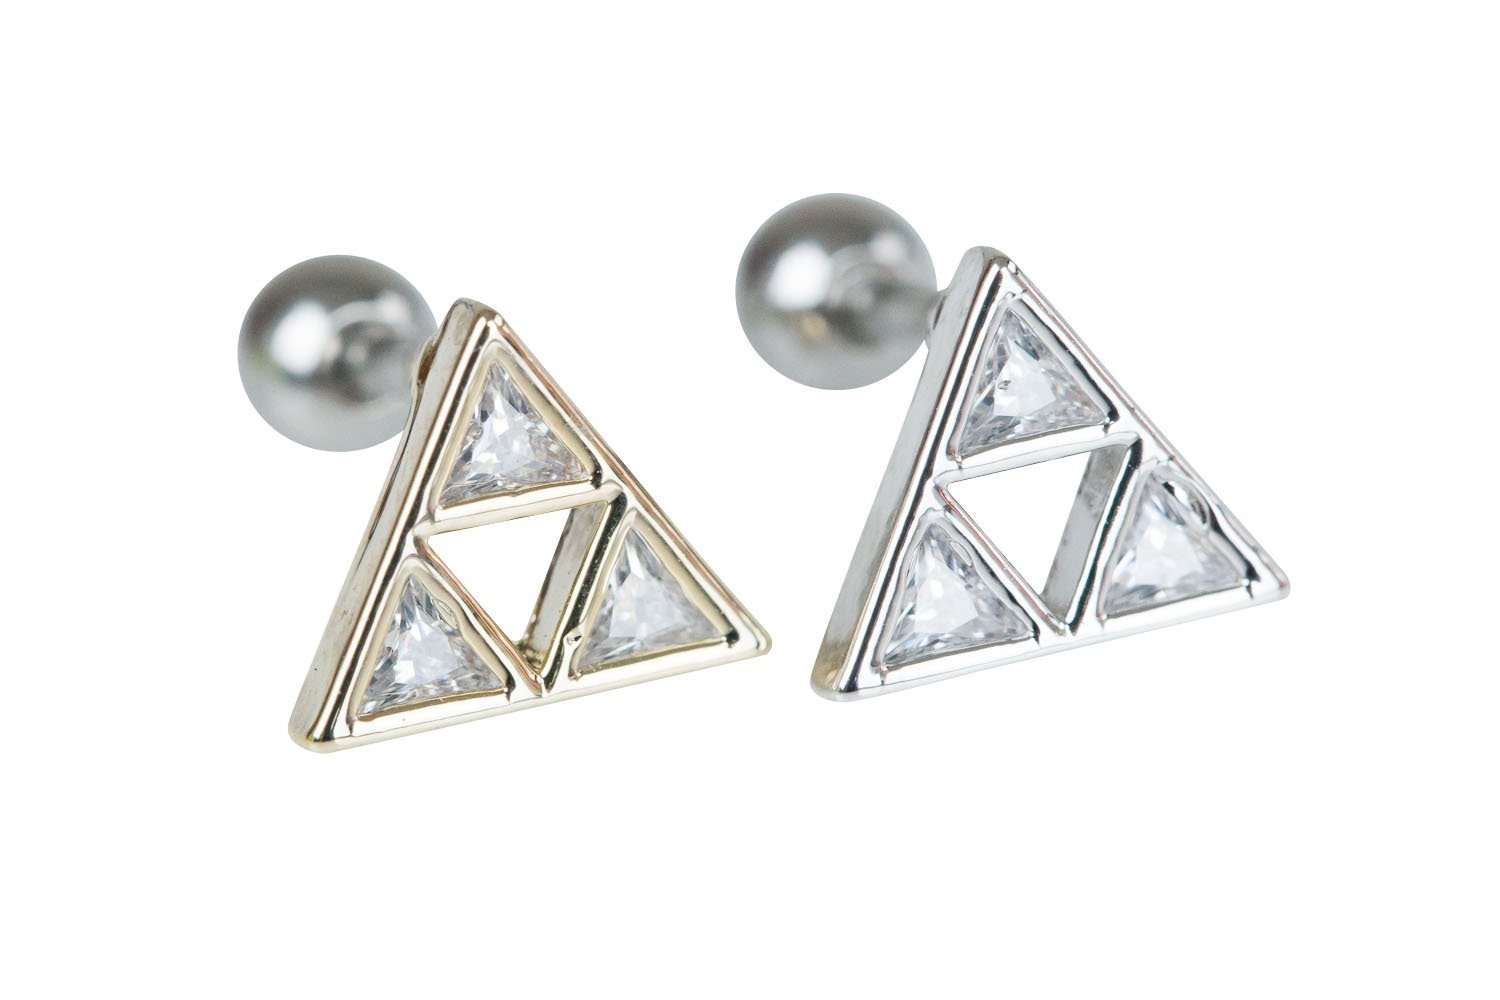 Crystal triangle piercing-WJ, triangle jewelry, triangle piercing, triangle shape jewelry, triangle shape piercing, triangle jewellry, geometric jewelry, Barbells, Body Jewelry, bo